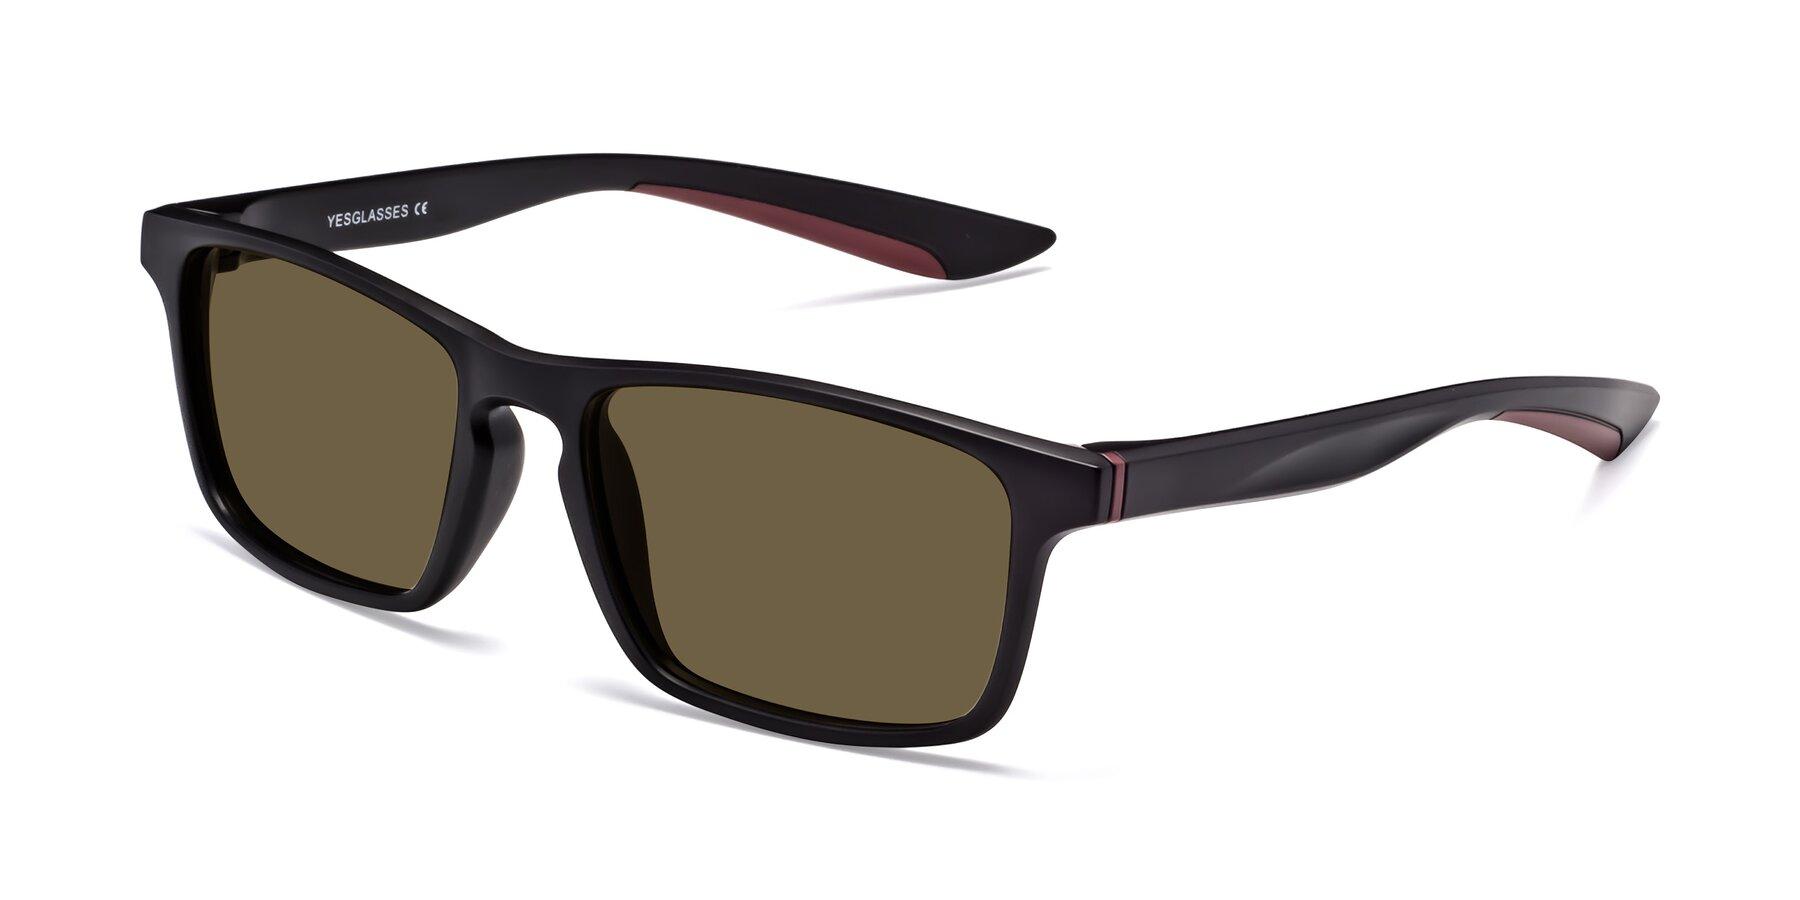 Angle of Passion in Matte Black-Wine with Brown Polarized Lenses